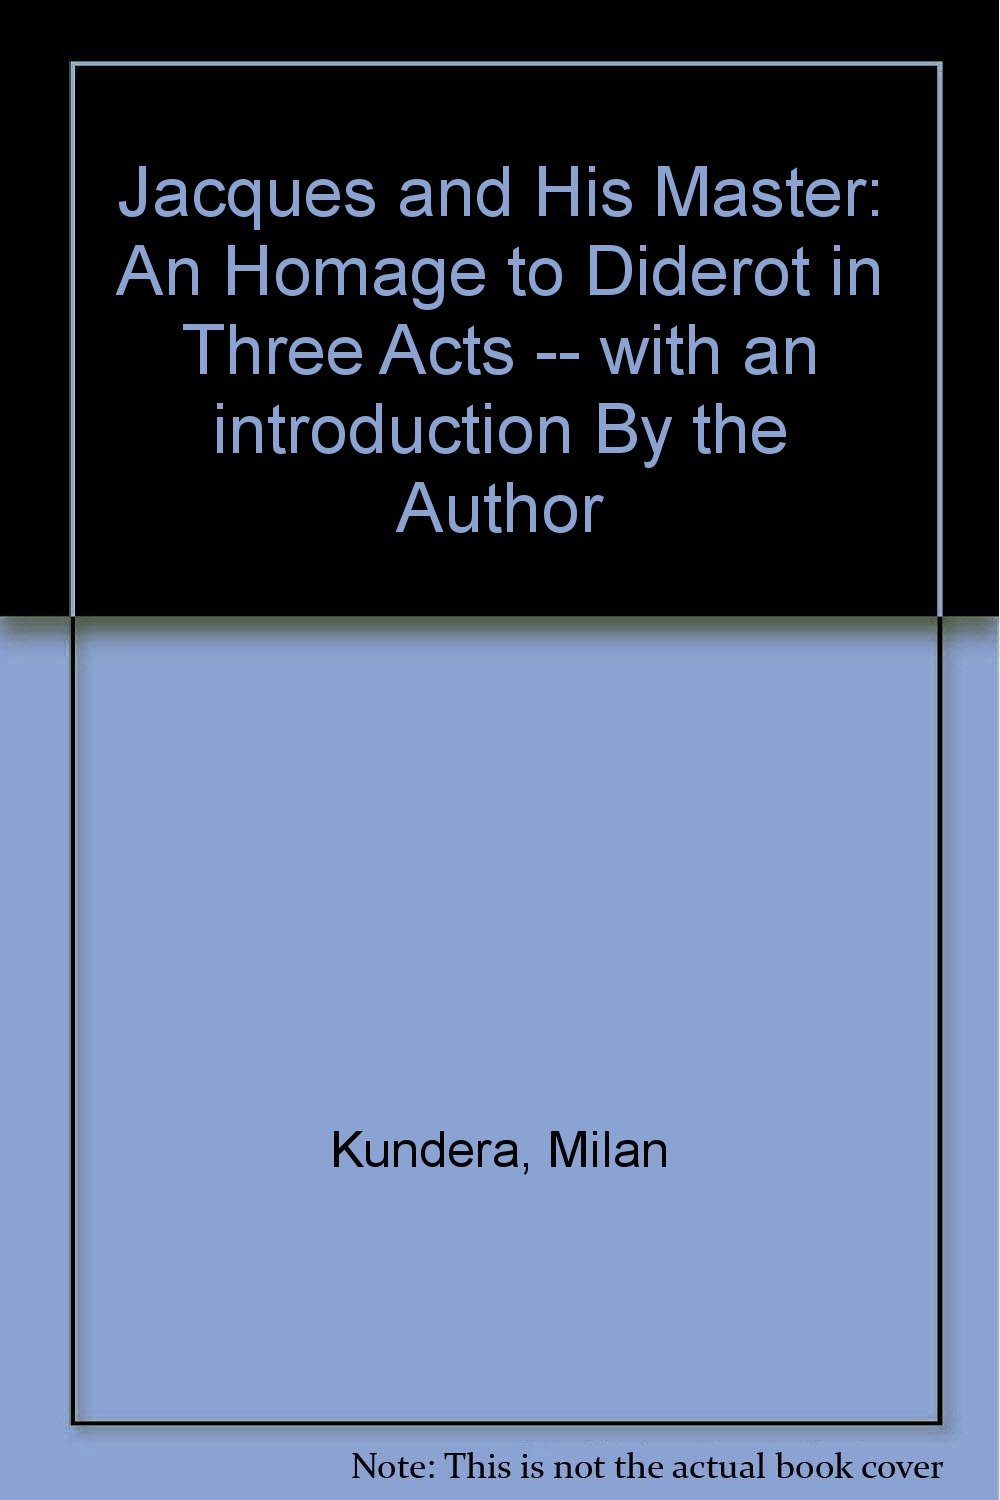 Jacques And His Master An Homage To Diderot In Three Acts By Milan Kundera